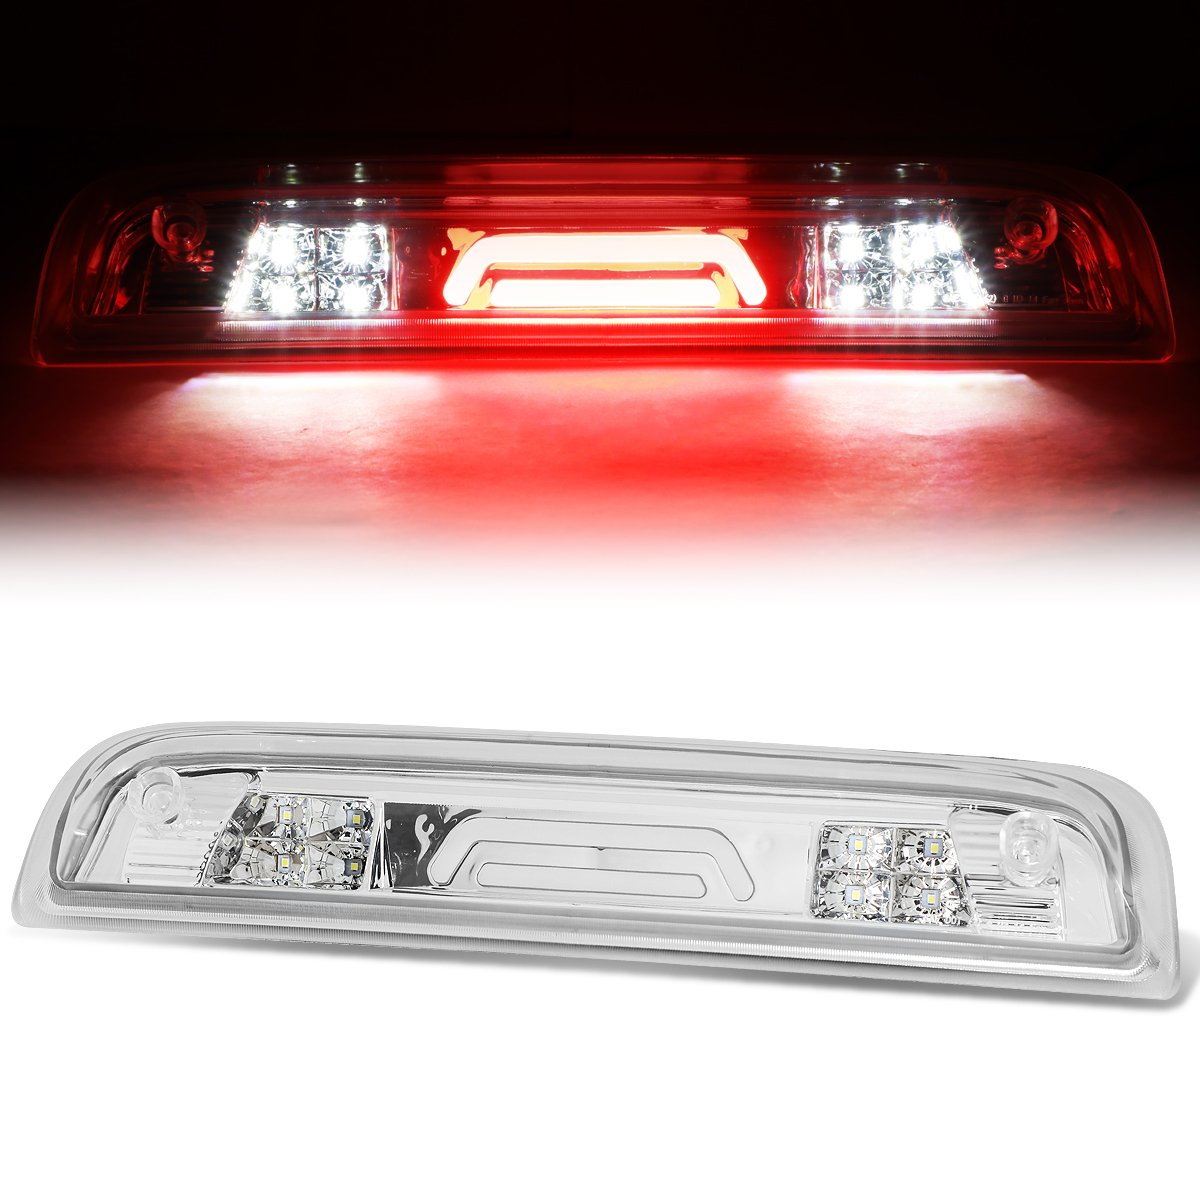 For 14-18 Chevy Silverado/GMC Sierra High Mount 3D LED 3rd Third Brake Light/Cargo Lamp (Black Housing Clear Lens) Auto Dynasty